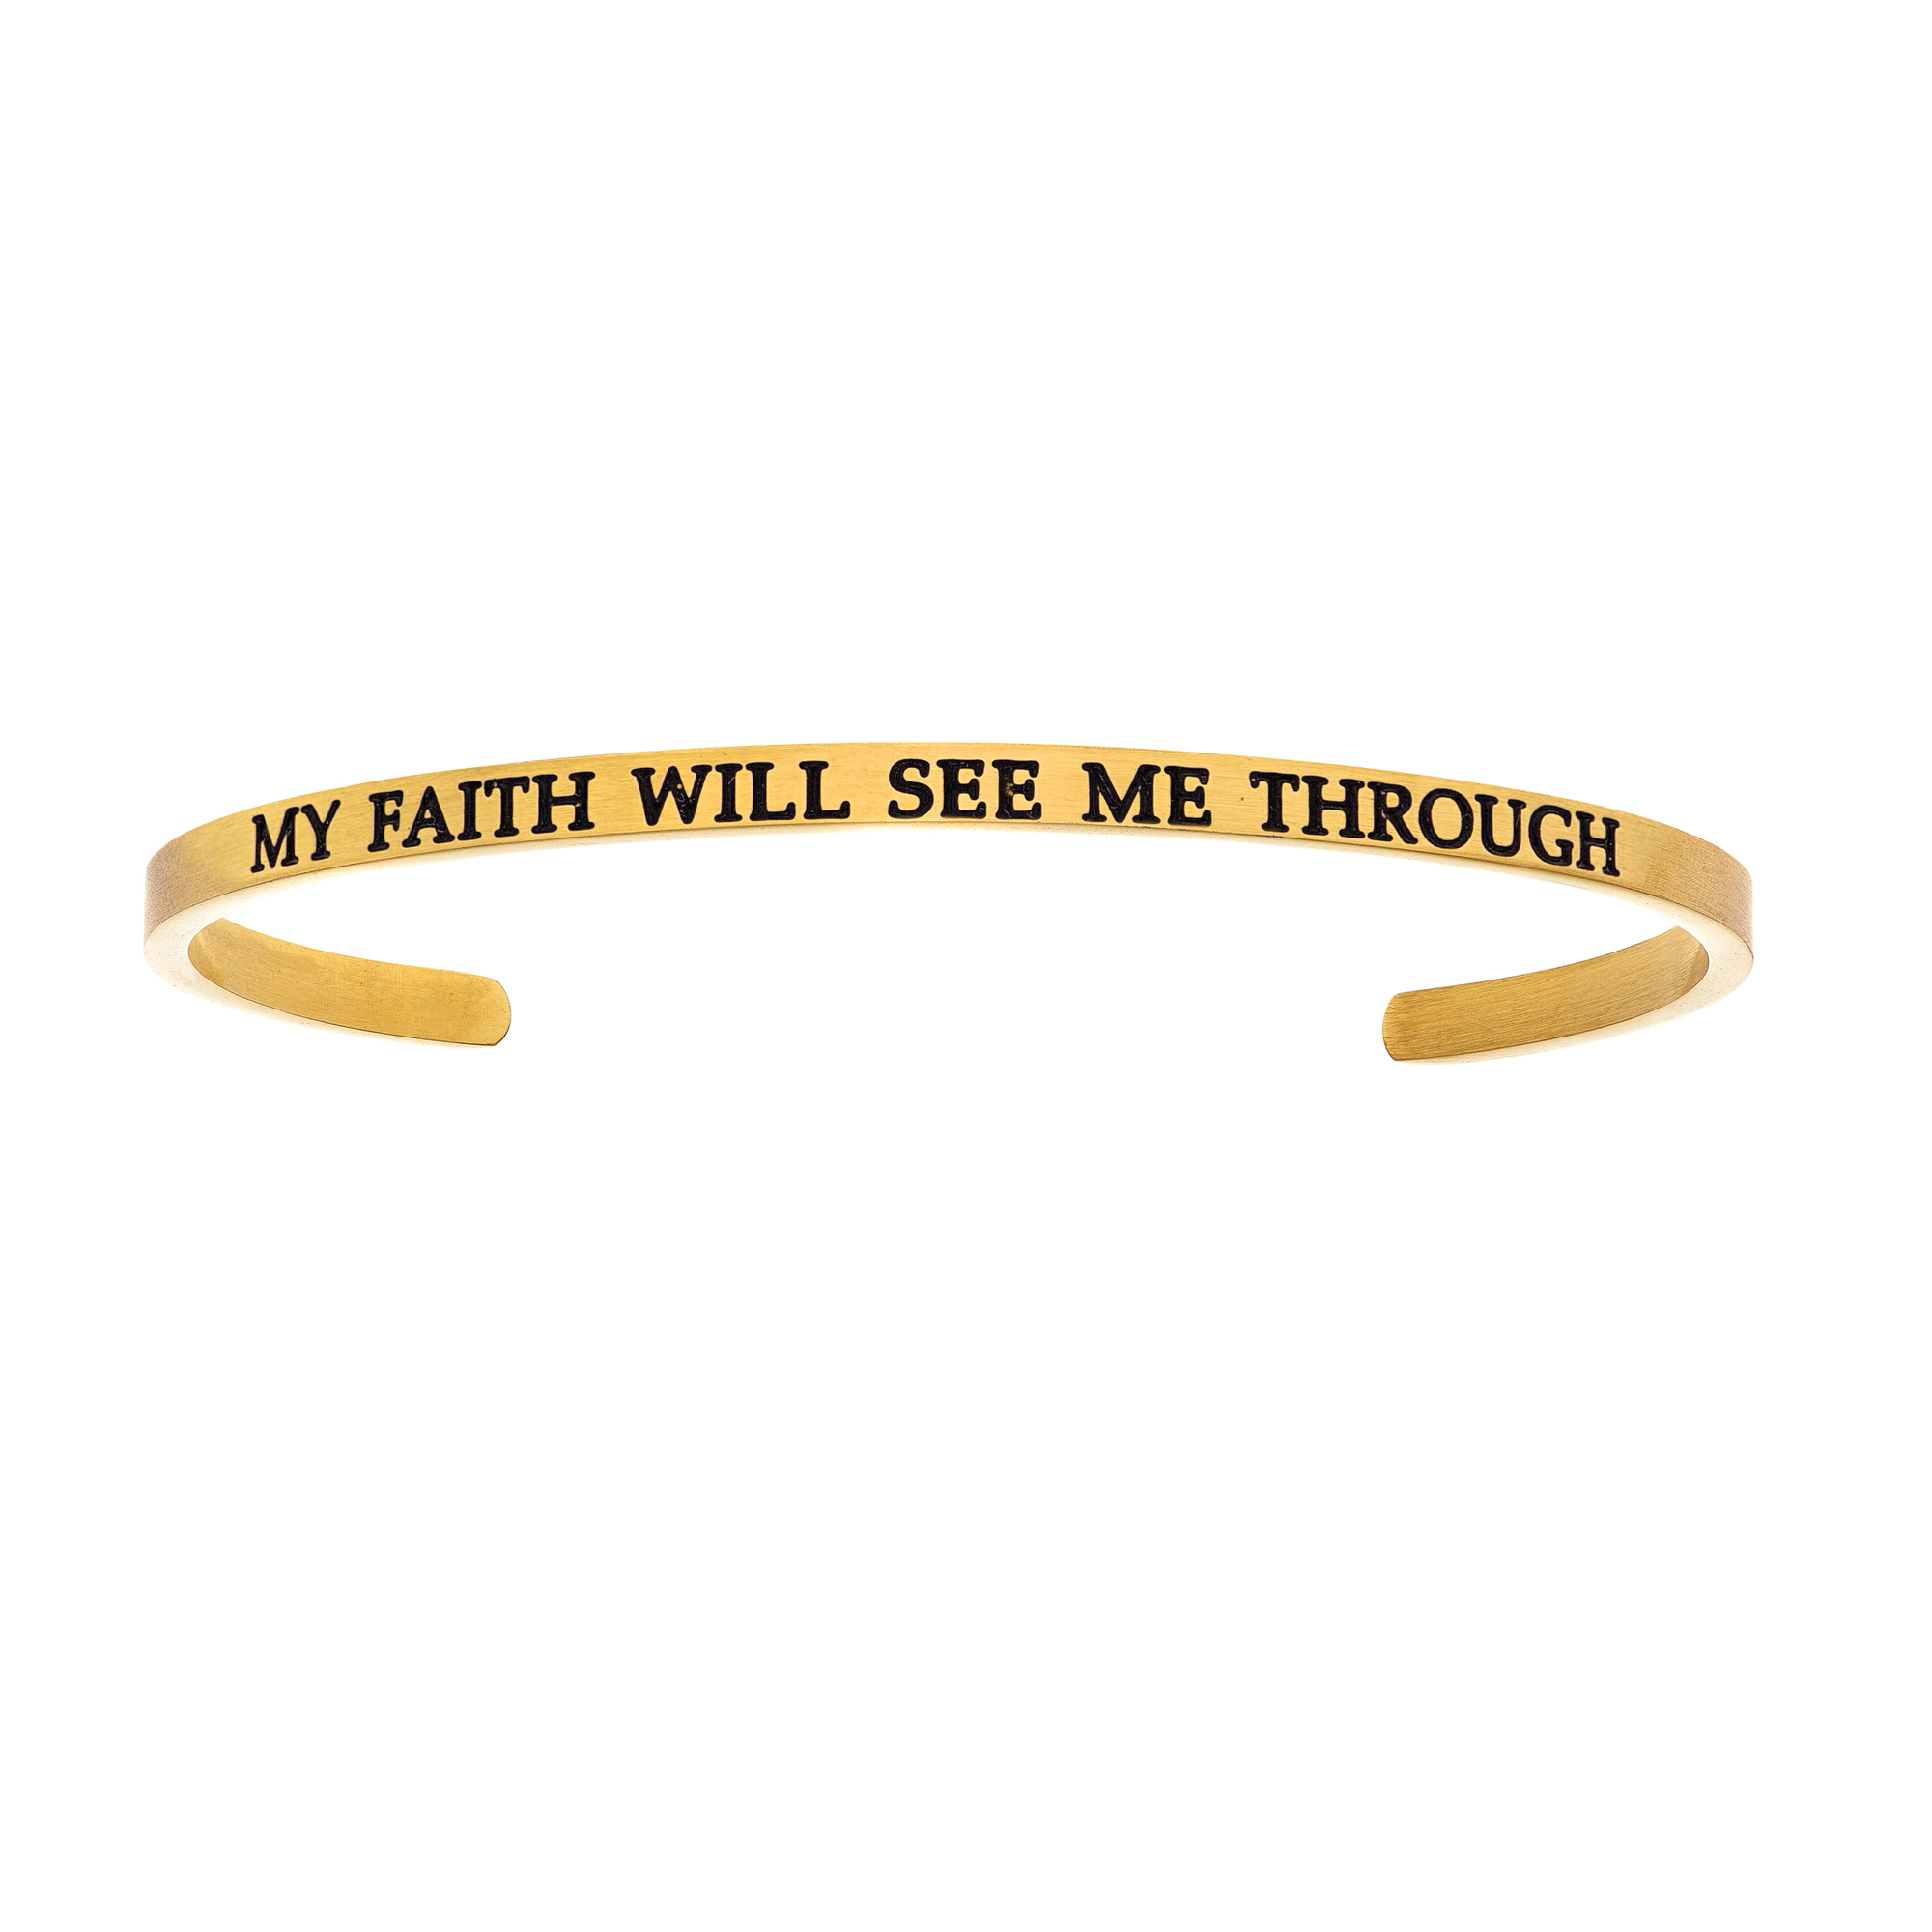 Intuitions Stainless Steel MY FAITH WILL SEE ME THROUGH Diamond Accent Cuff Bangle Bracelet, 7″